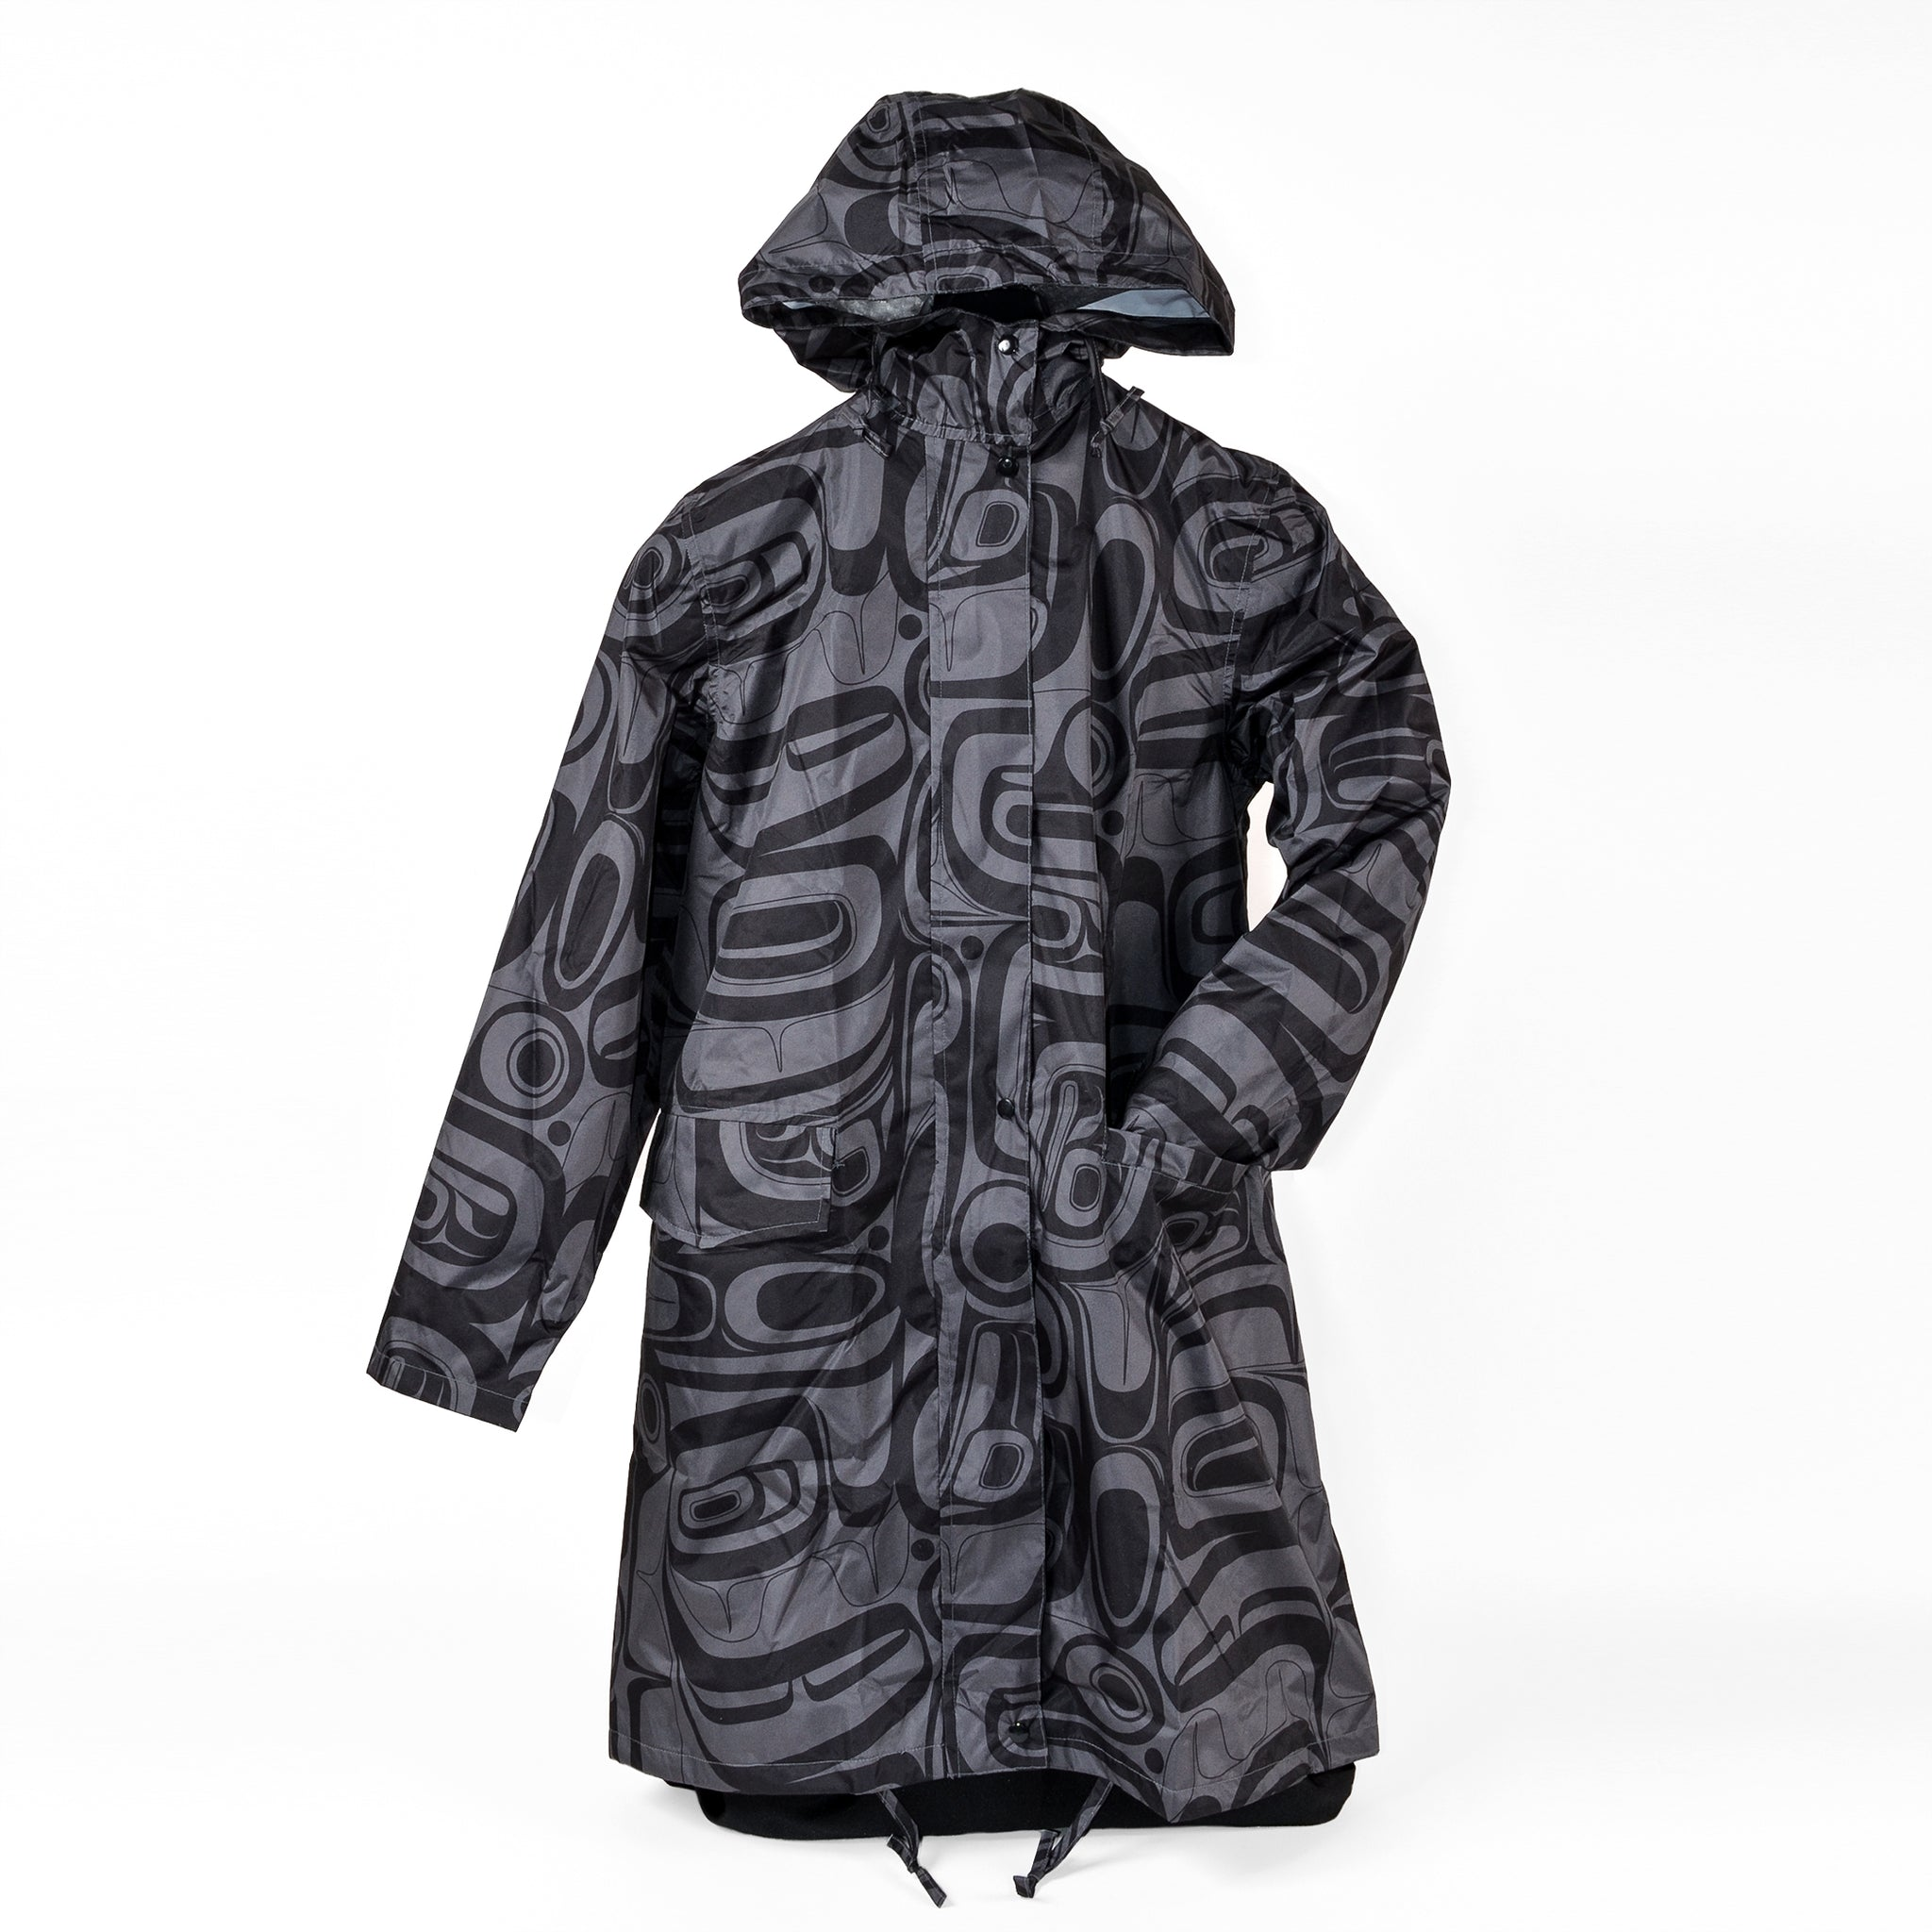 Hooded Rain Coat with Reusable Pouch by Kelly Robinson, Nuxalk/Nuu-chah-nulth